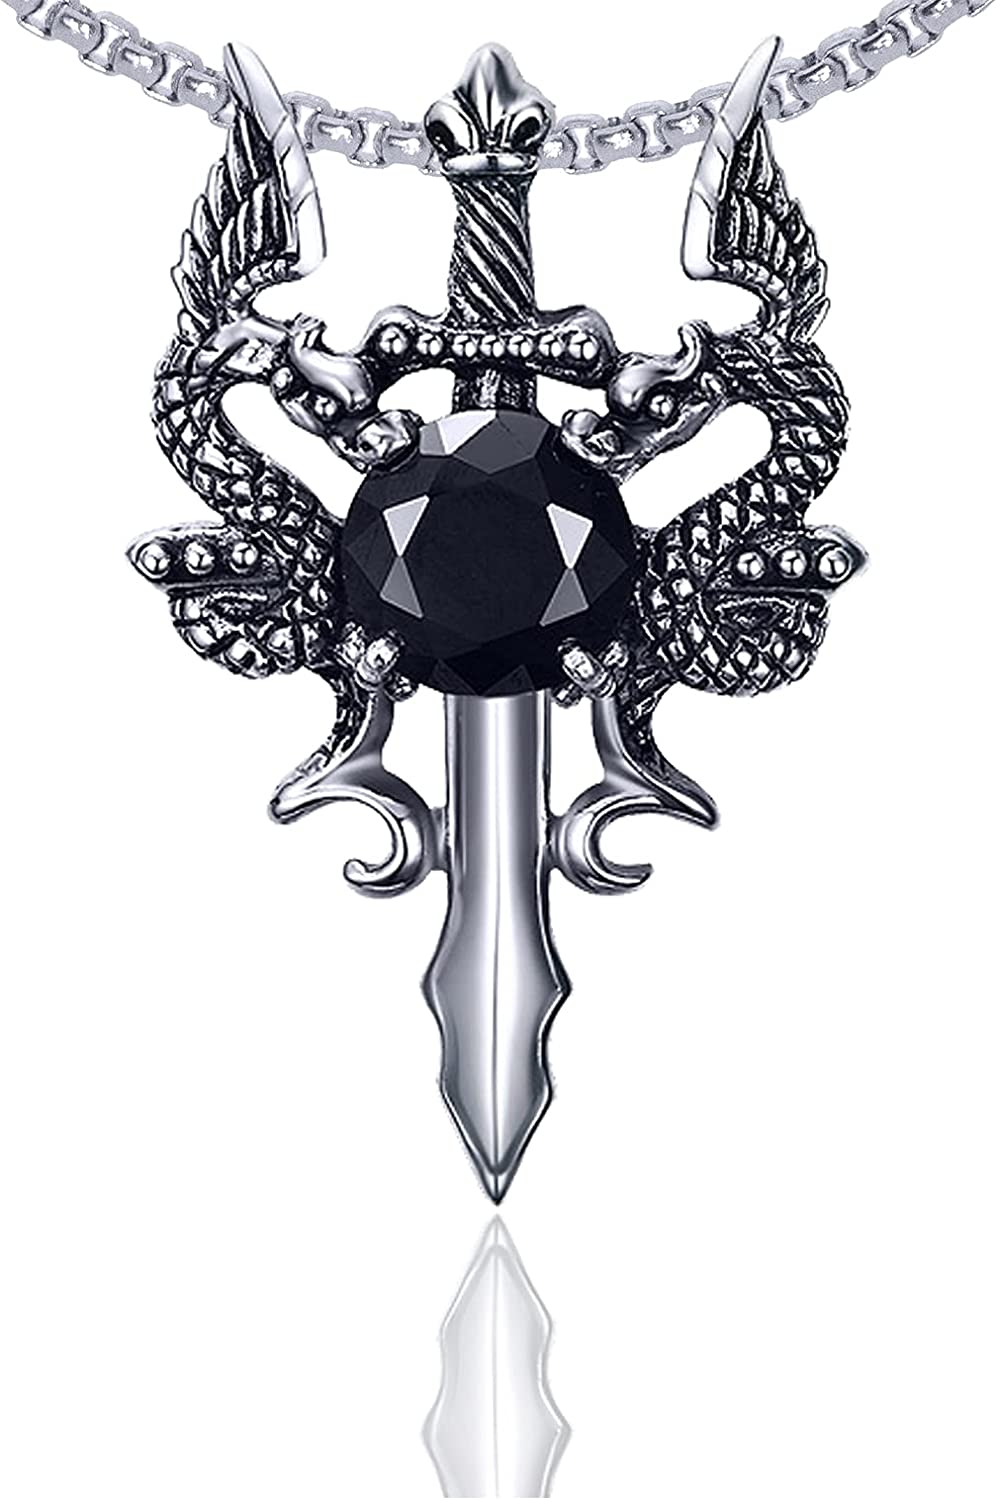 Xusamss Punk Titanium Steel Wing Dragon Crystal Pendant Sword Necklace,24inches Link Chain